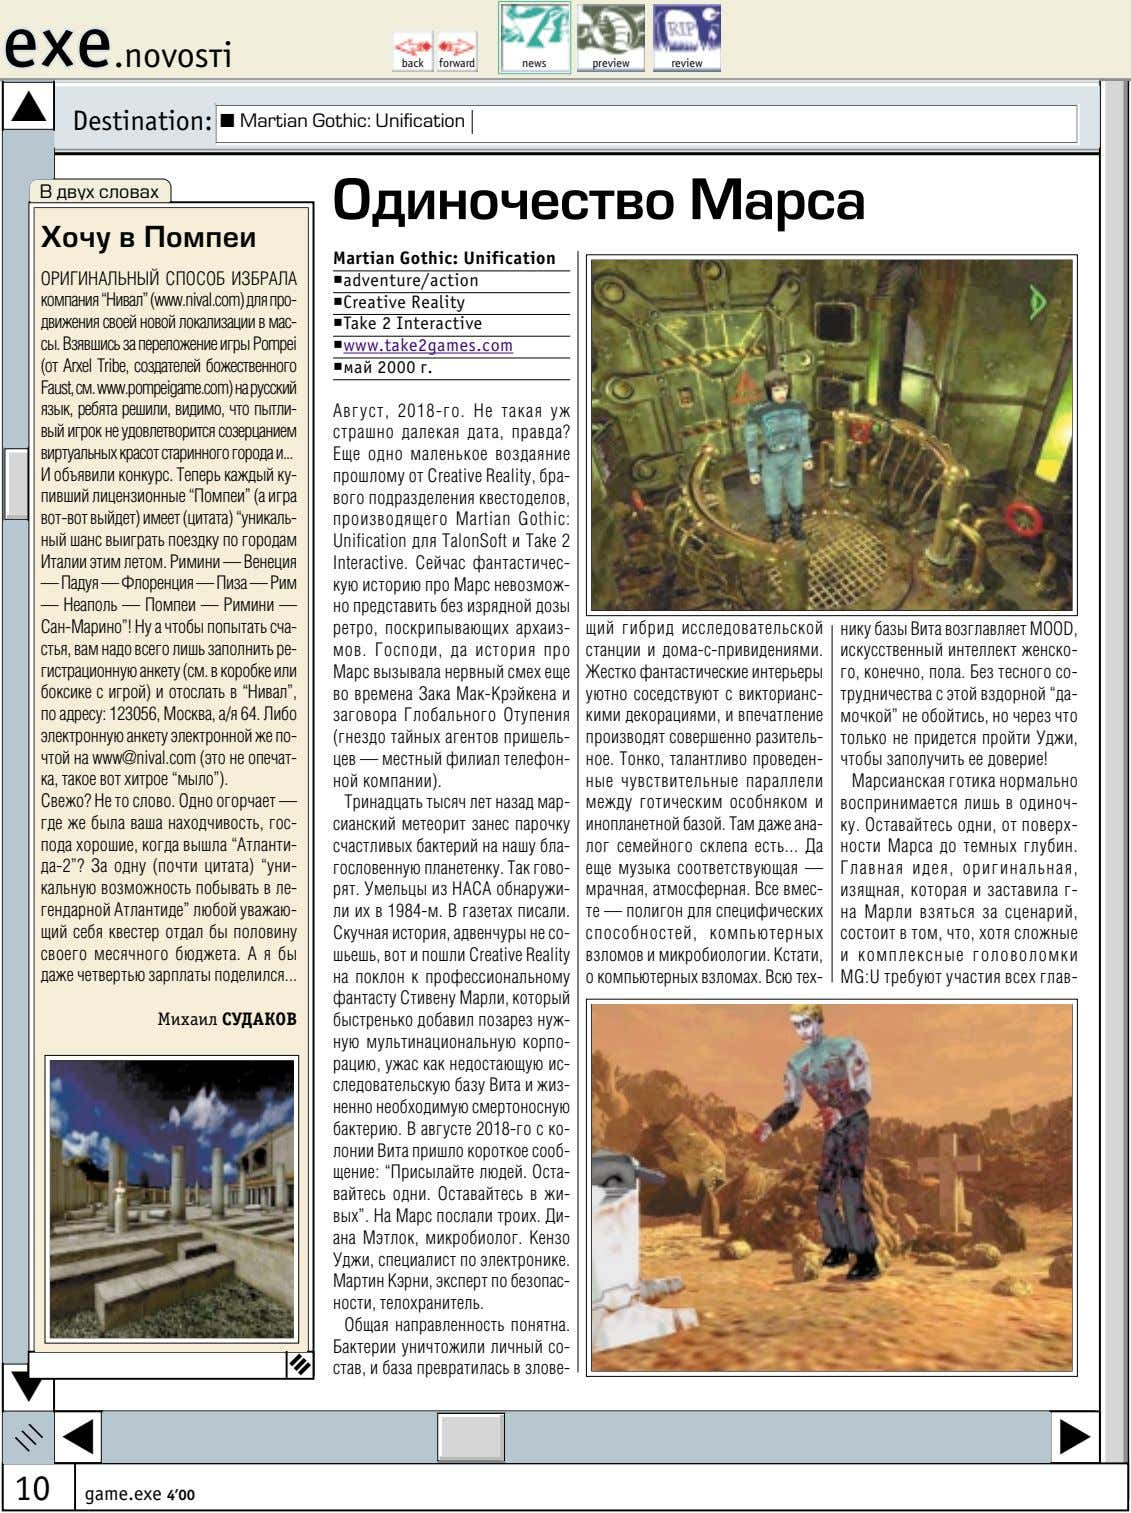 exe.novosтi back forward news preview review Destination: Martian Gothic: Unification  äâóõ ñëîâàõ